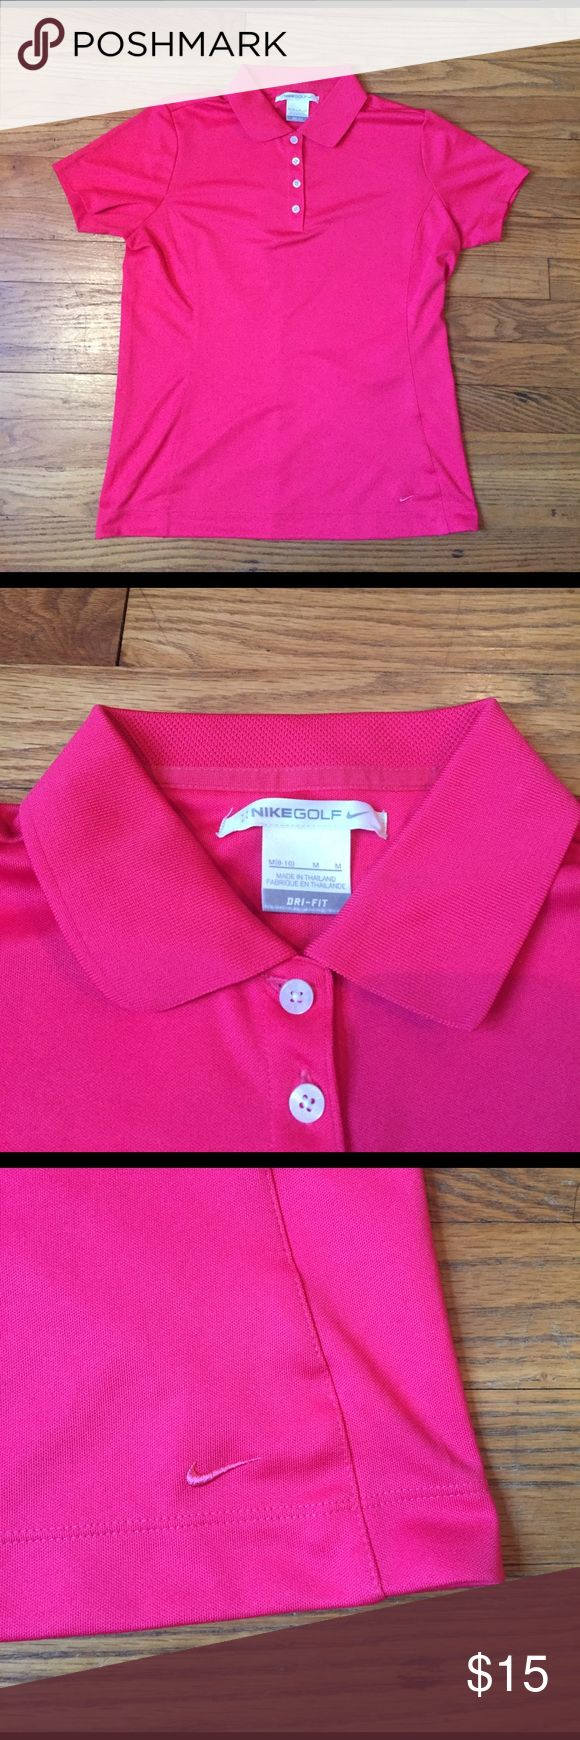 NEW Nike Golf Polo Shirt Sz M New without tags. Nike Tops